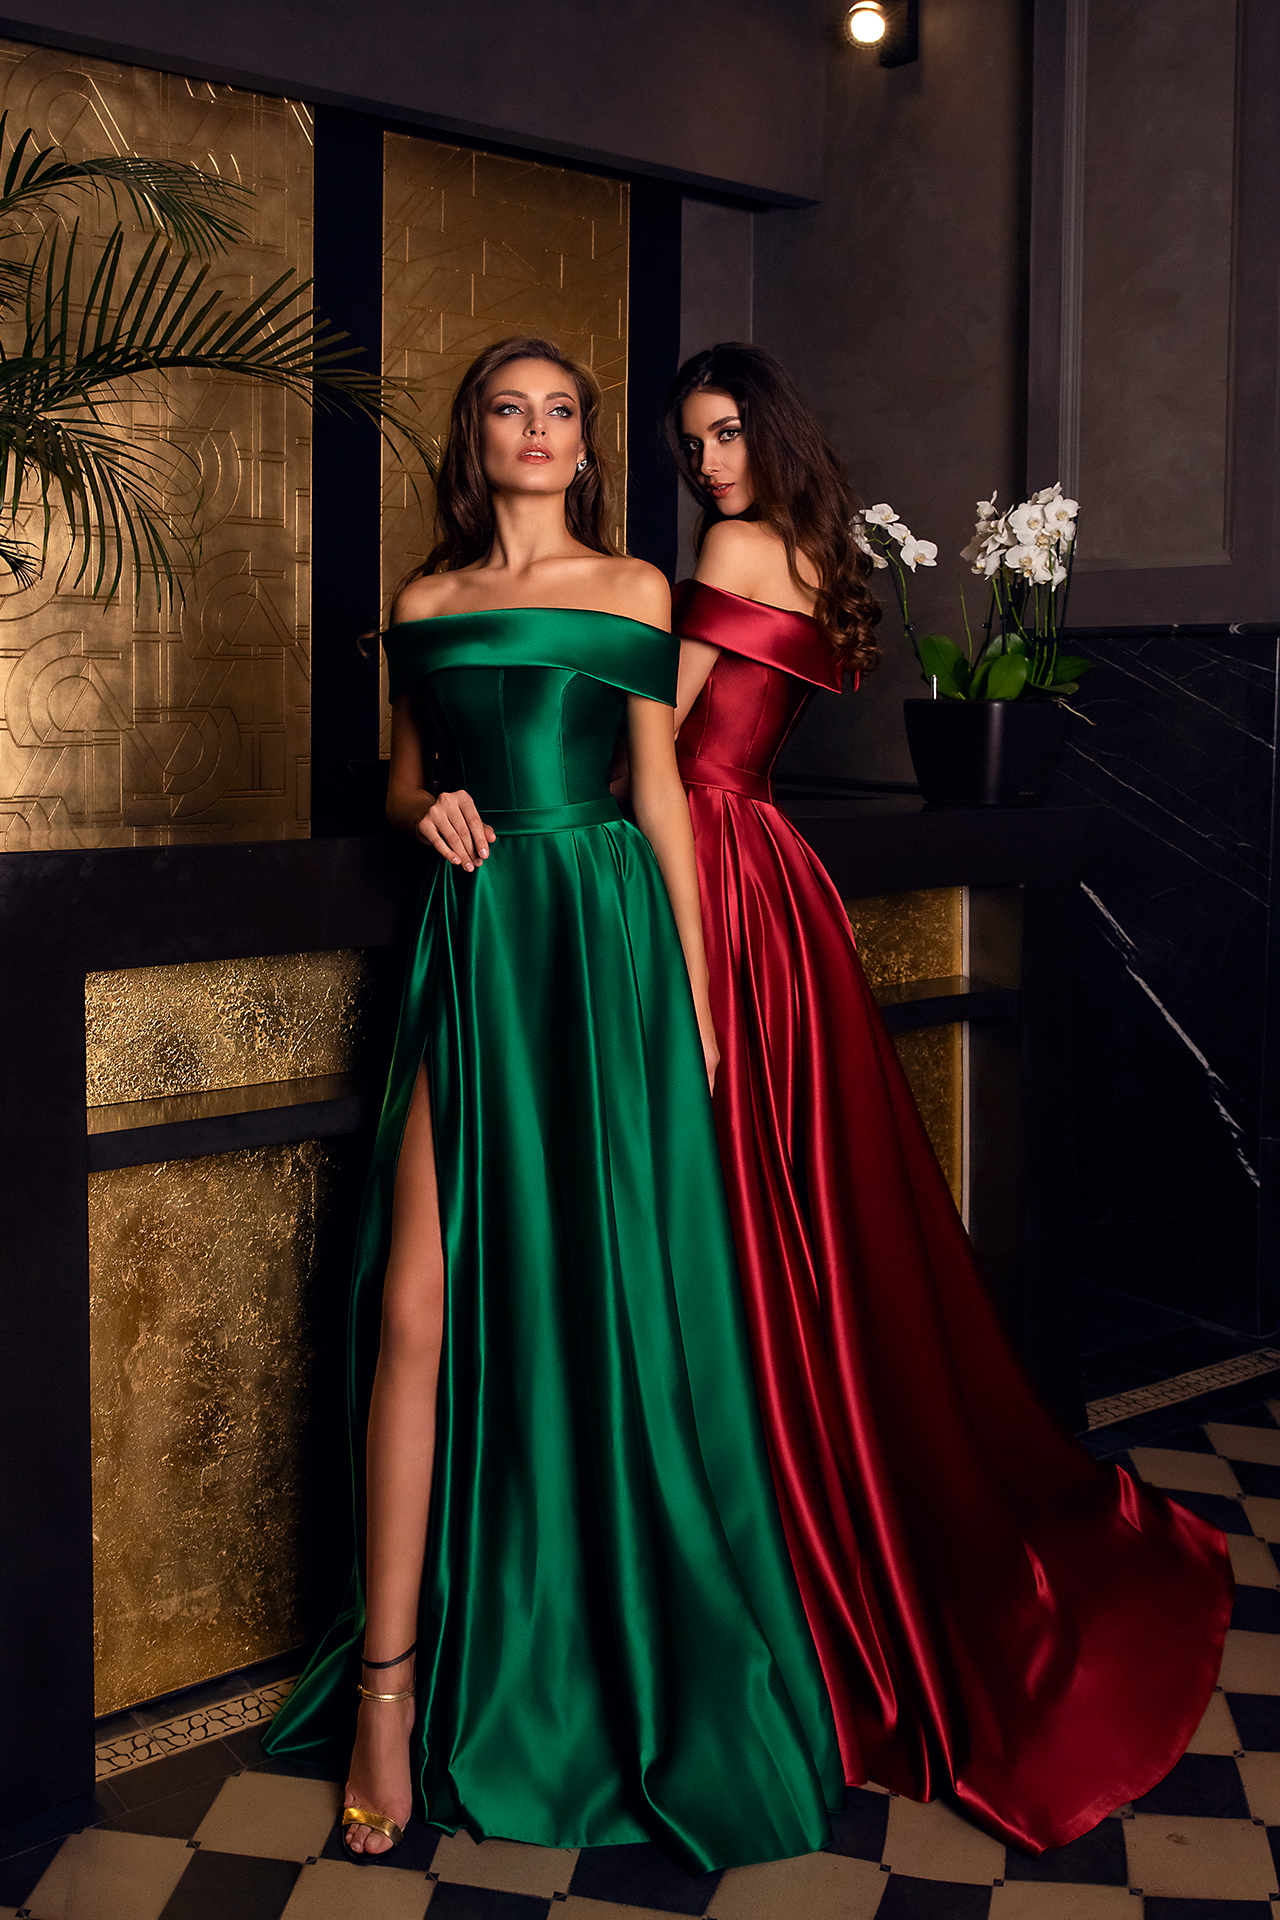 Evening gowns S-1537 green Silhouette  A Line  Color  Blue  Green  Black  Red  Neckline  Straight  Sleeves  Off the Shoulder Sleeves